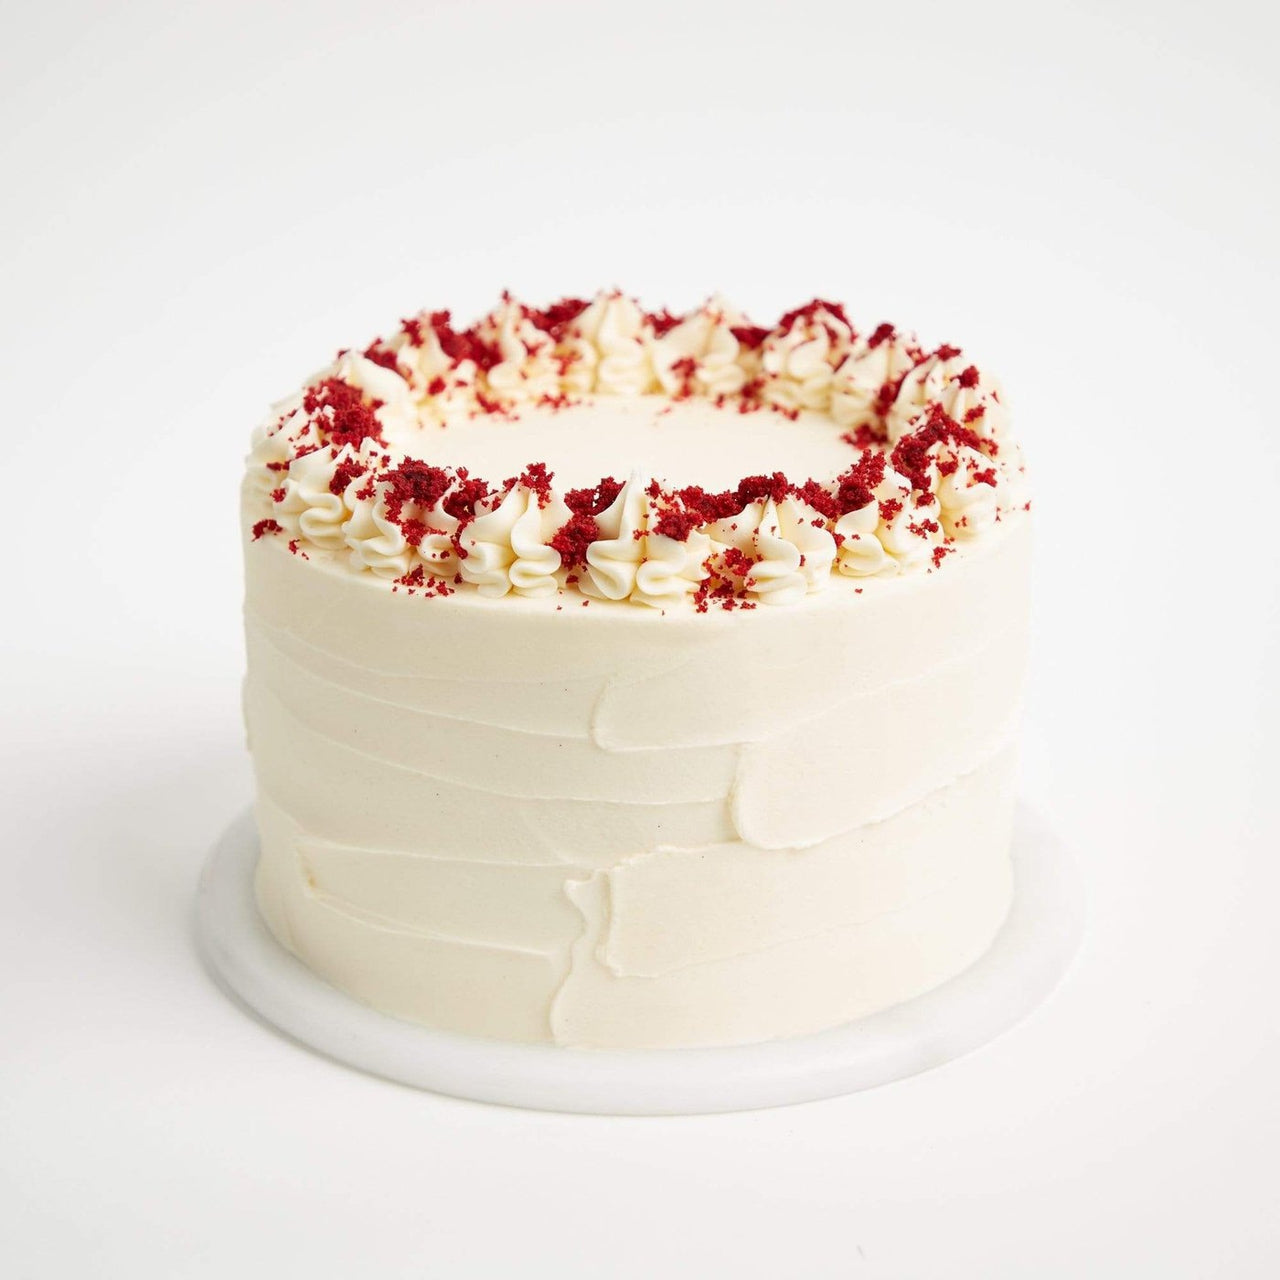 Vegan Red Velvet Cake By Crumbs & Doilies